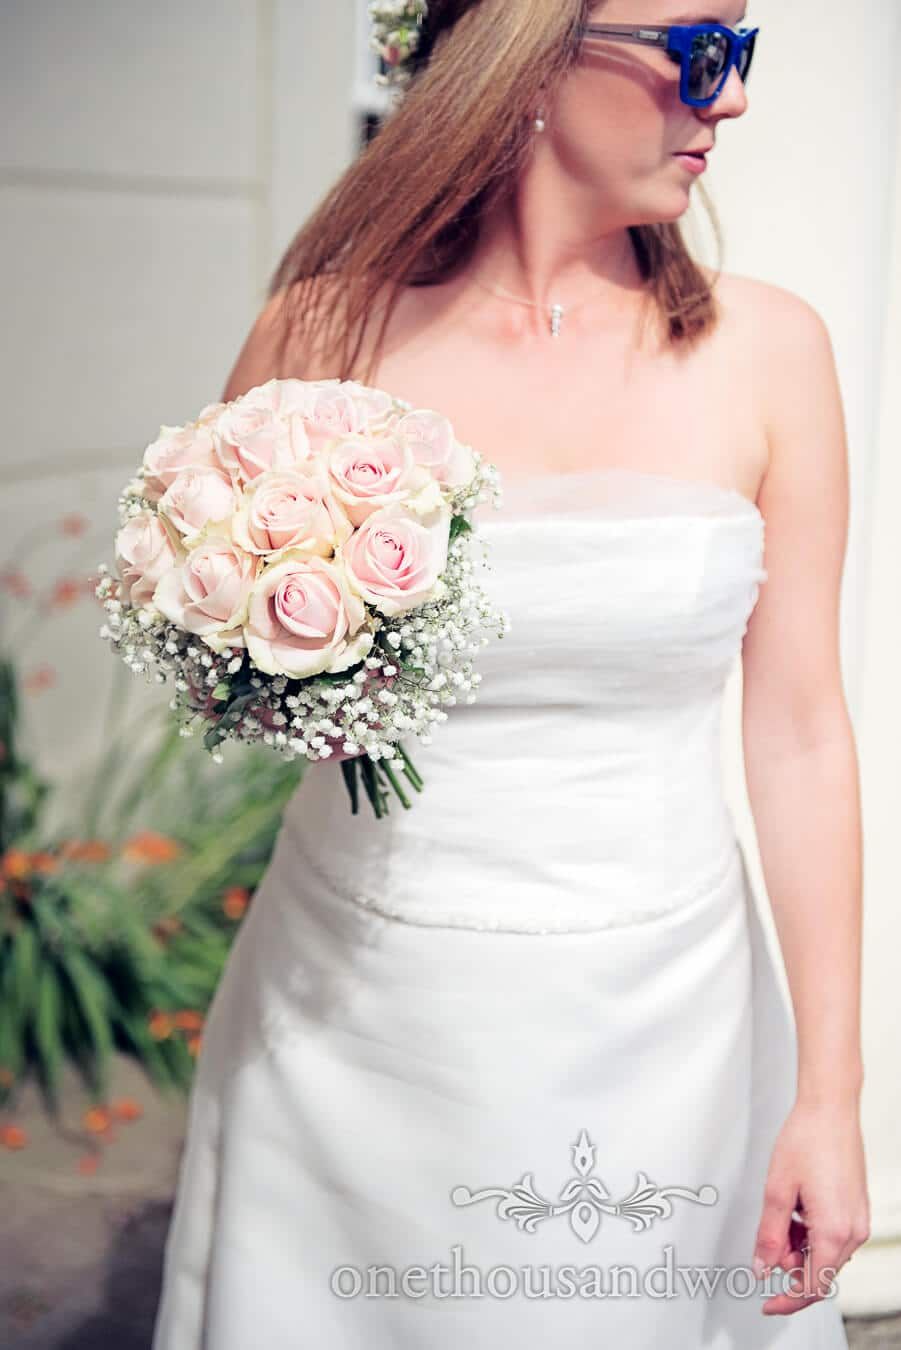 Bride with pink rose wedding bouquet at Countryside Wedding Photograph